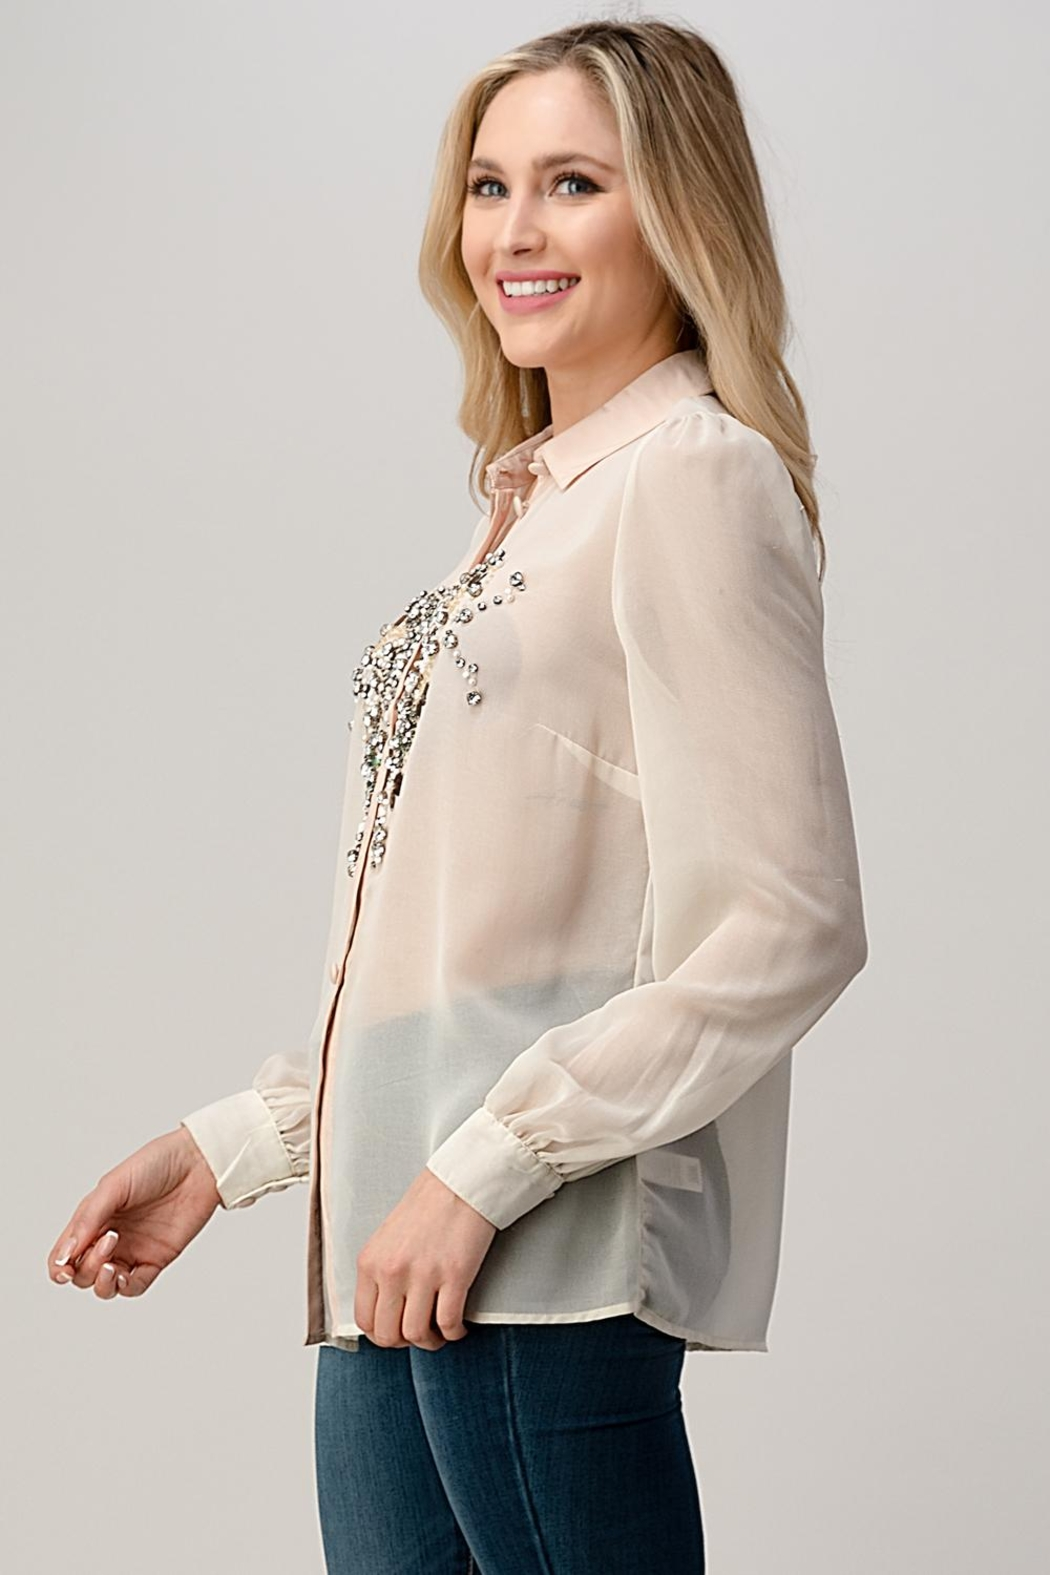 Kaii Mesh Blouse Shirt Top With Beaded Jewel Trim - Front Full Image